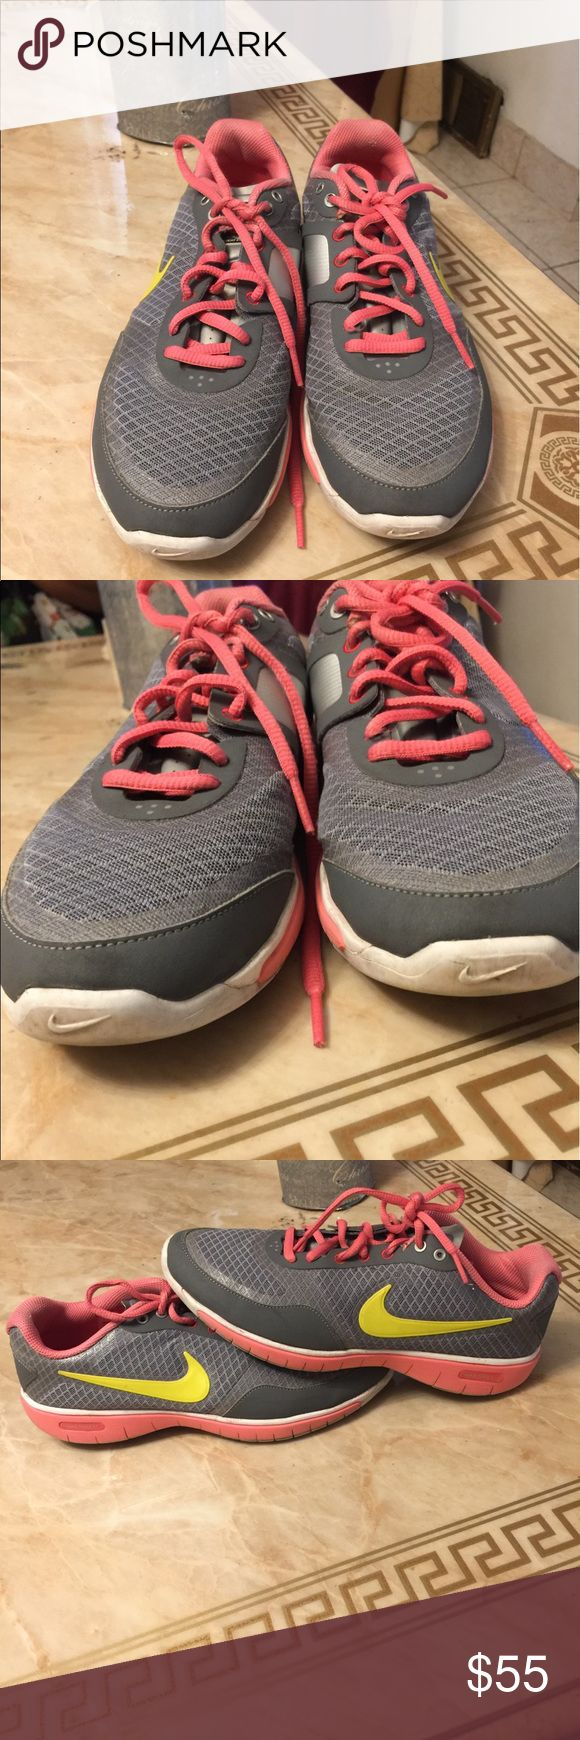 NIKE TRAINING  Size 8 Pre loved gently used only 5 times good condition no holes rips or stains Reasonable offers welcome Nike Shoes Athletic Shoes